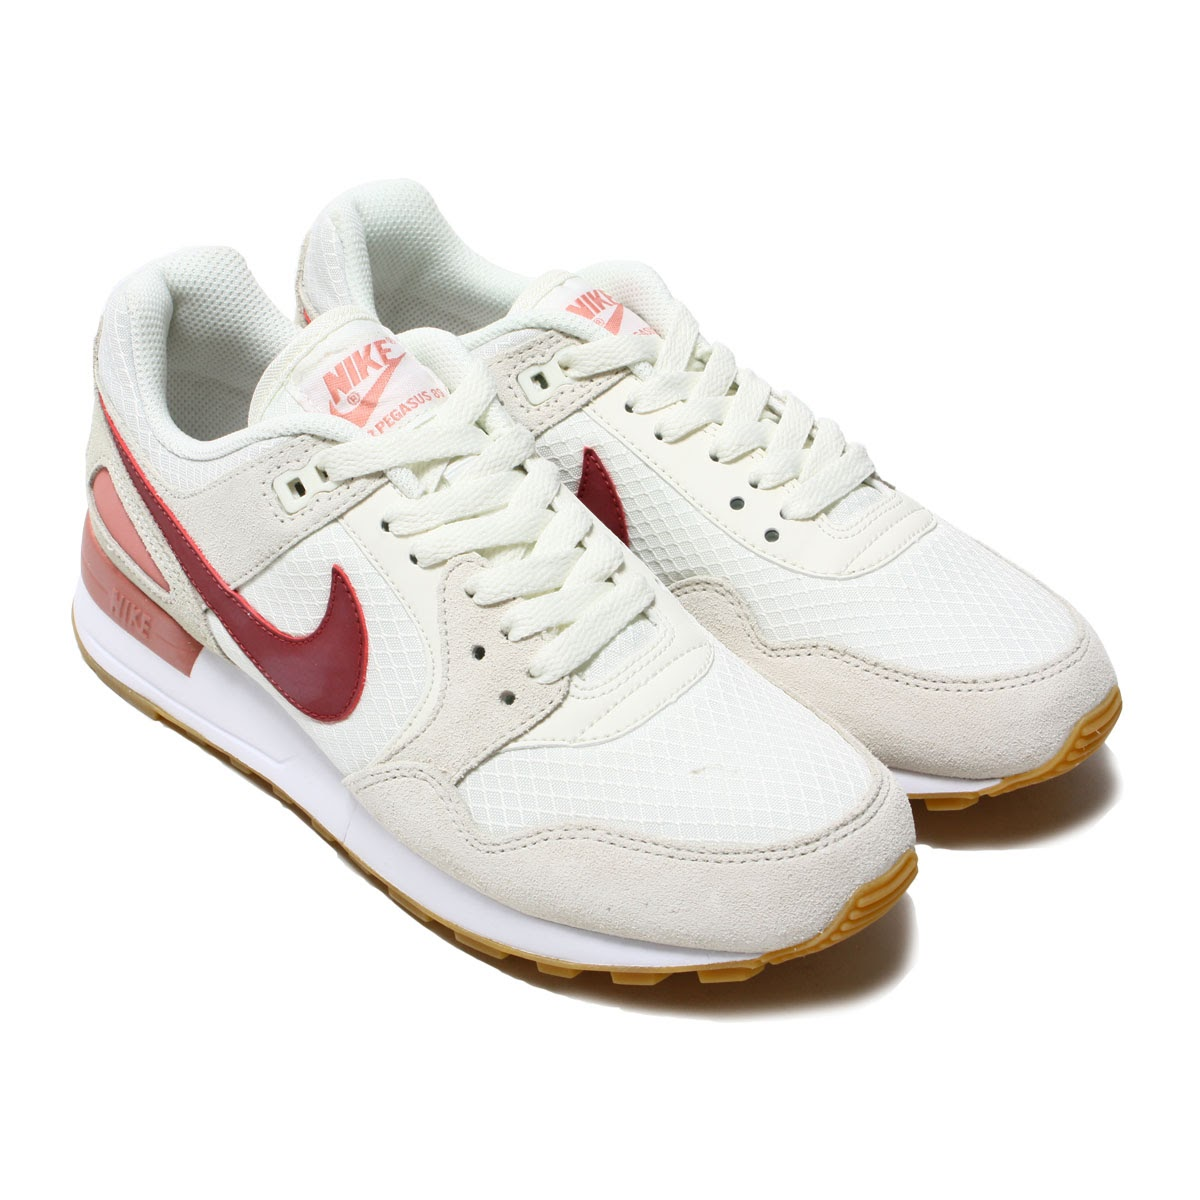 Nike women air Pegasus 89 improves the racer who is Aiko Nic in a refined  silhouette full of the sense of speed. I image original Pegasus '89 and  adopt the ...